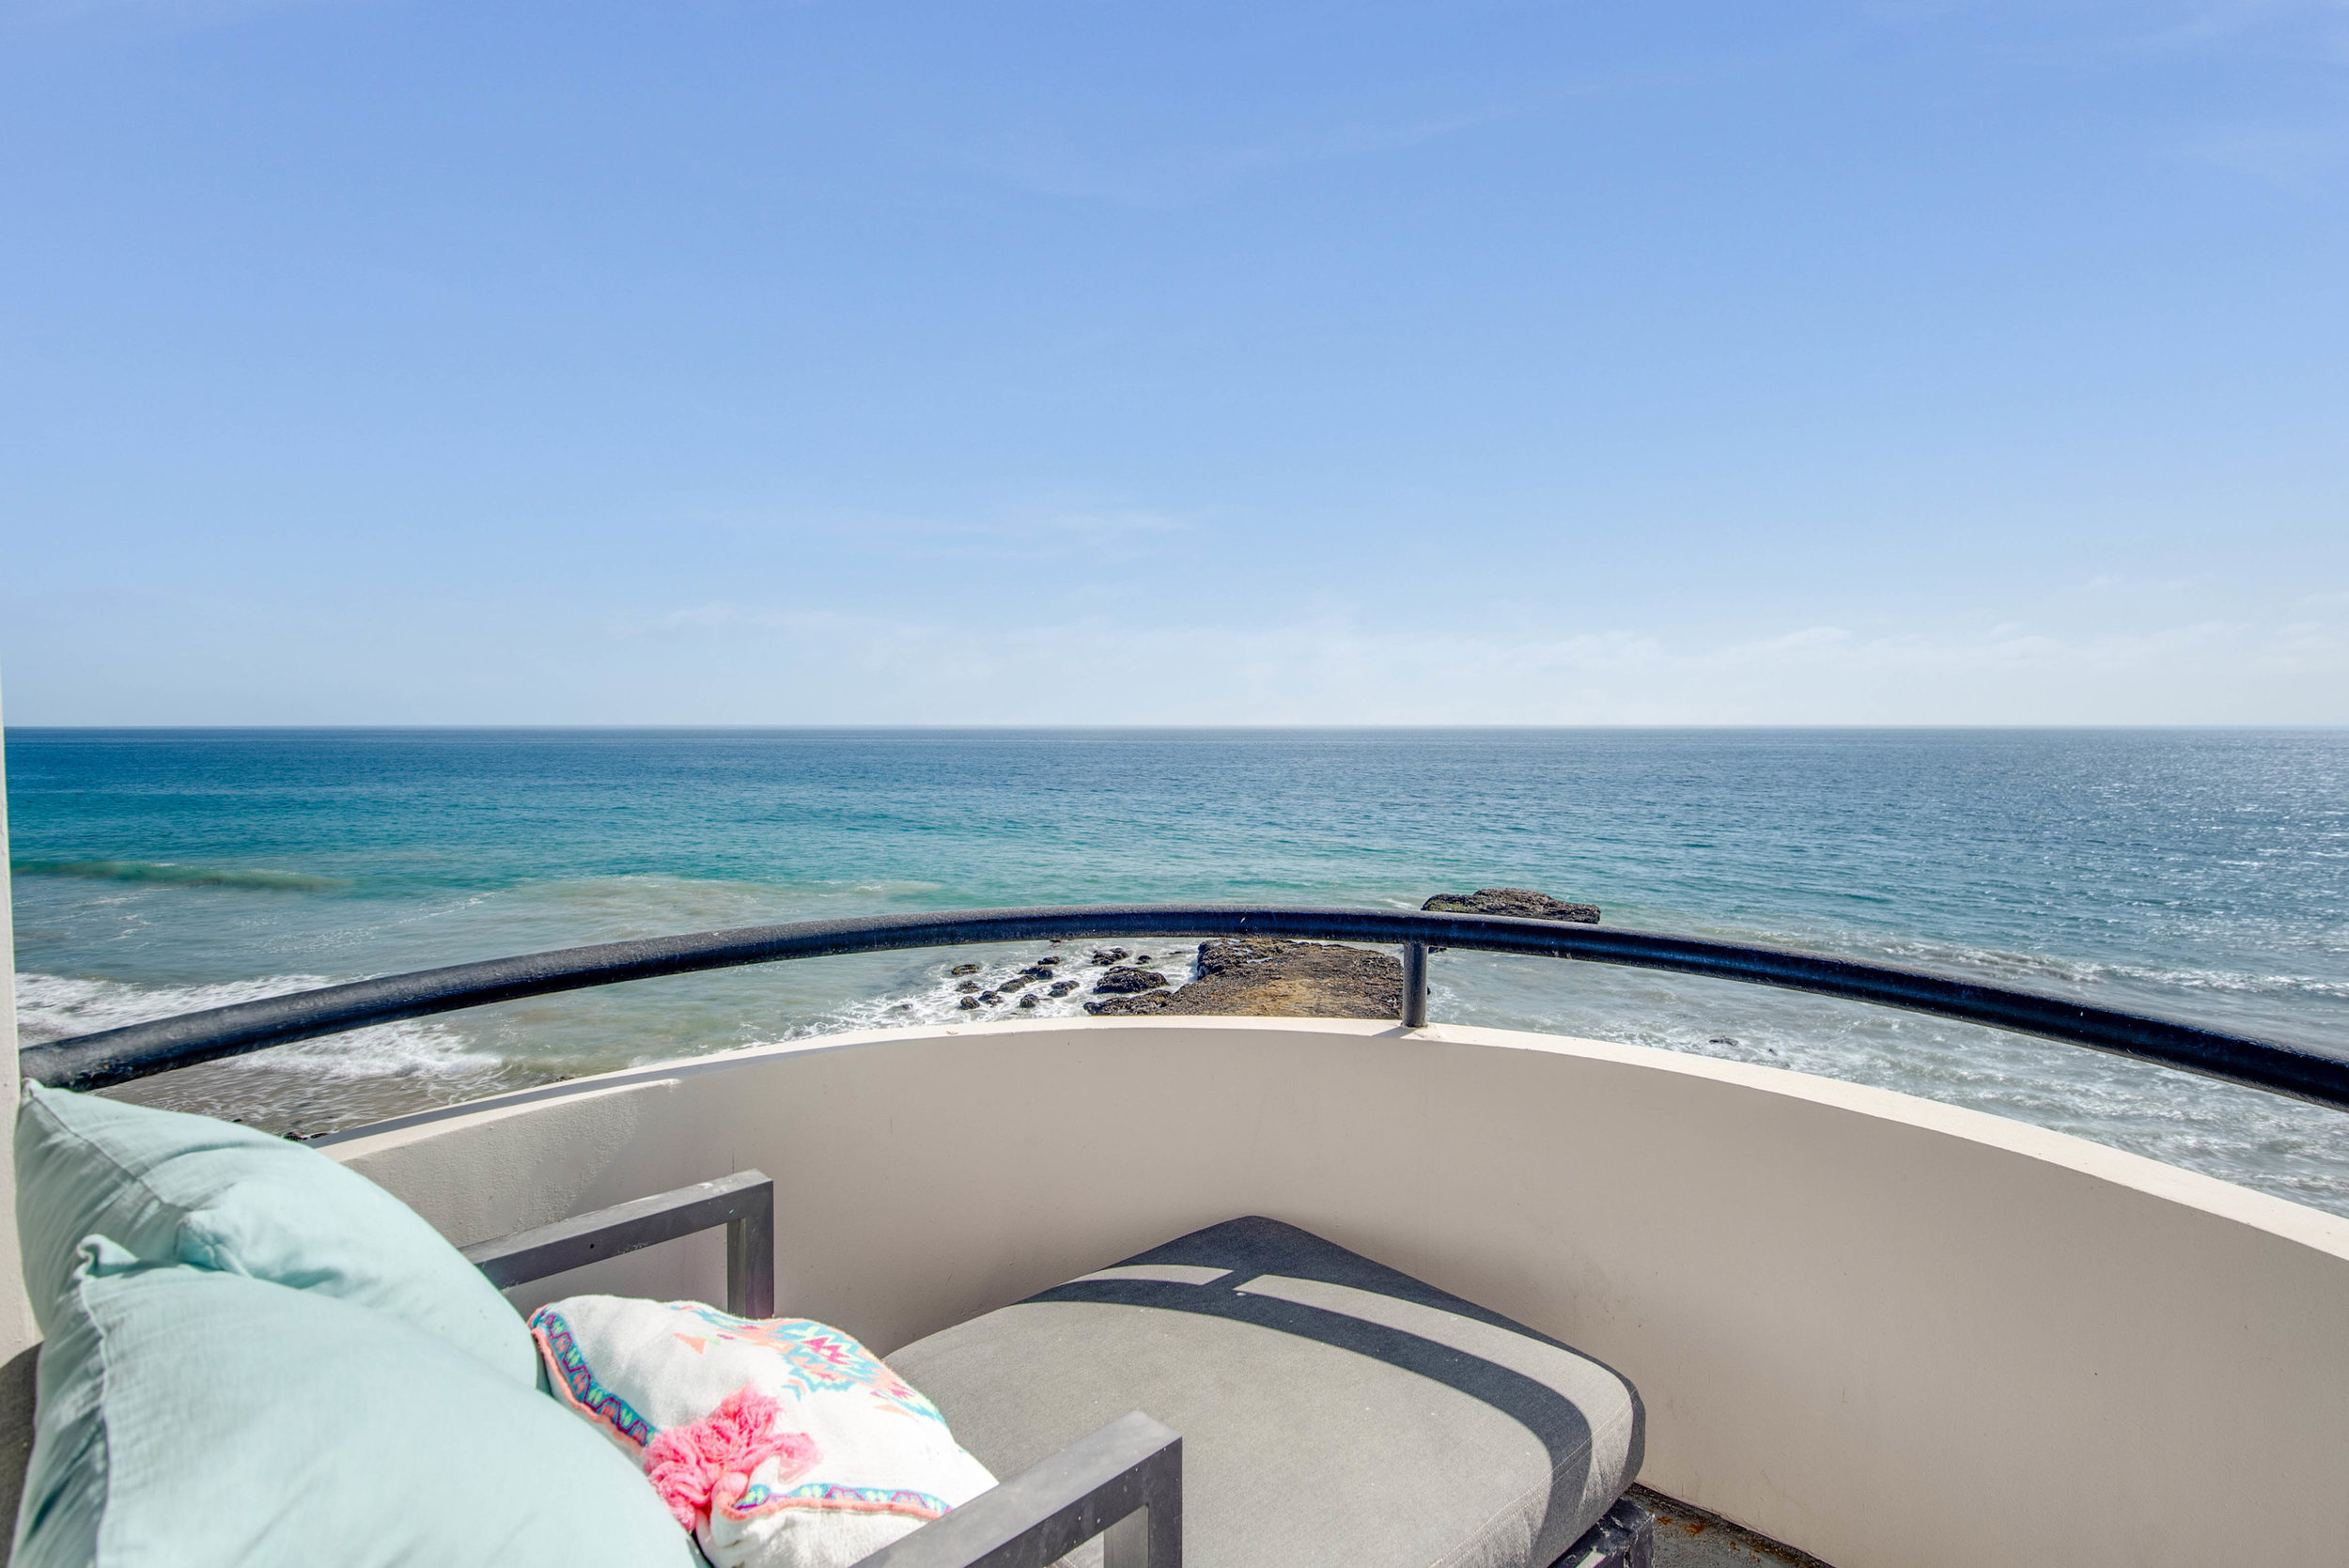 001 Ocean View 25252 Malibu Road For Sale Lease The Malibu Life Team Luxury Real Estate.jpg